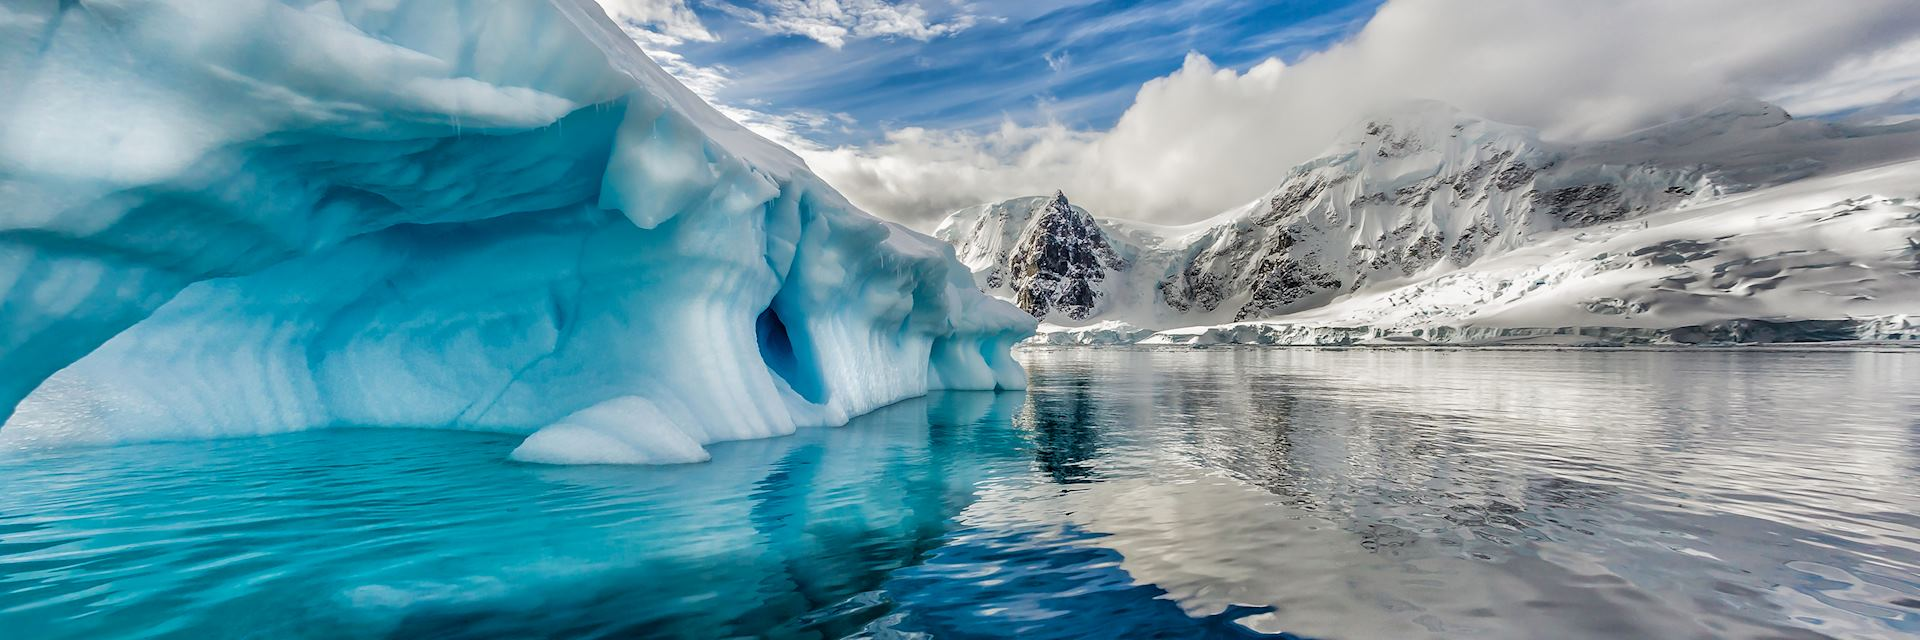 Iceberg in Andord Bay, Antarctica